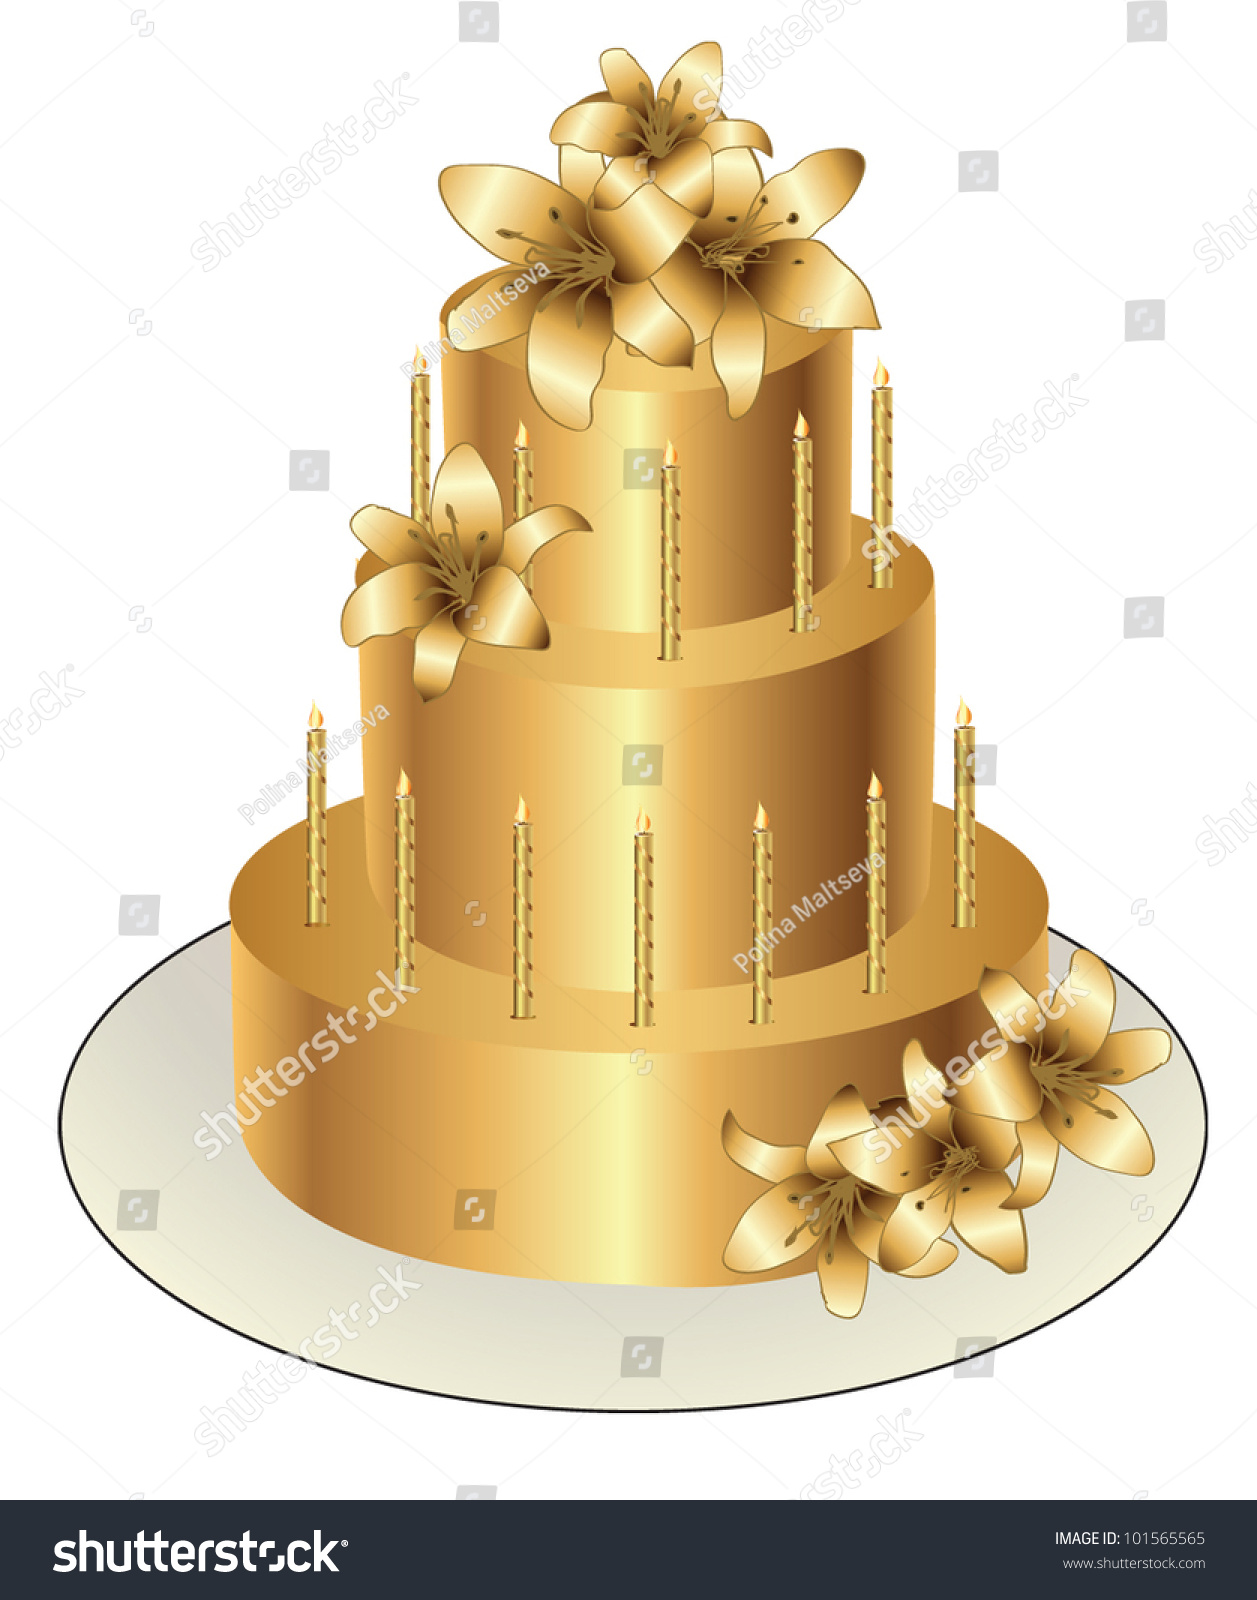 Gold Birthday Cake Vector Design Stock Vector 101565565